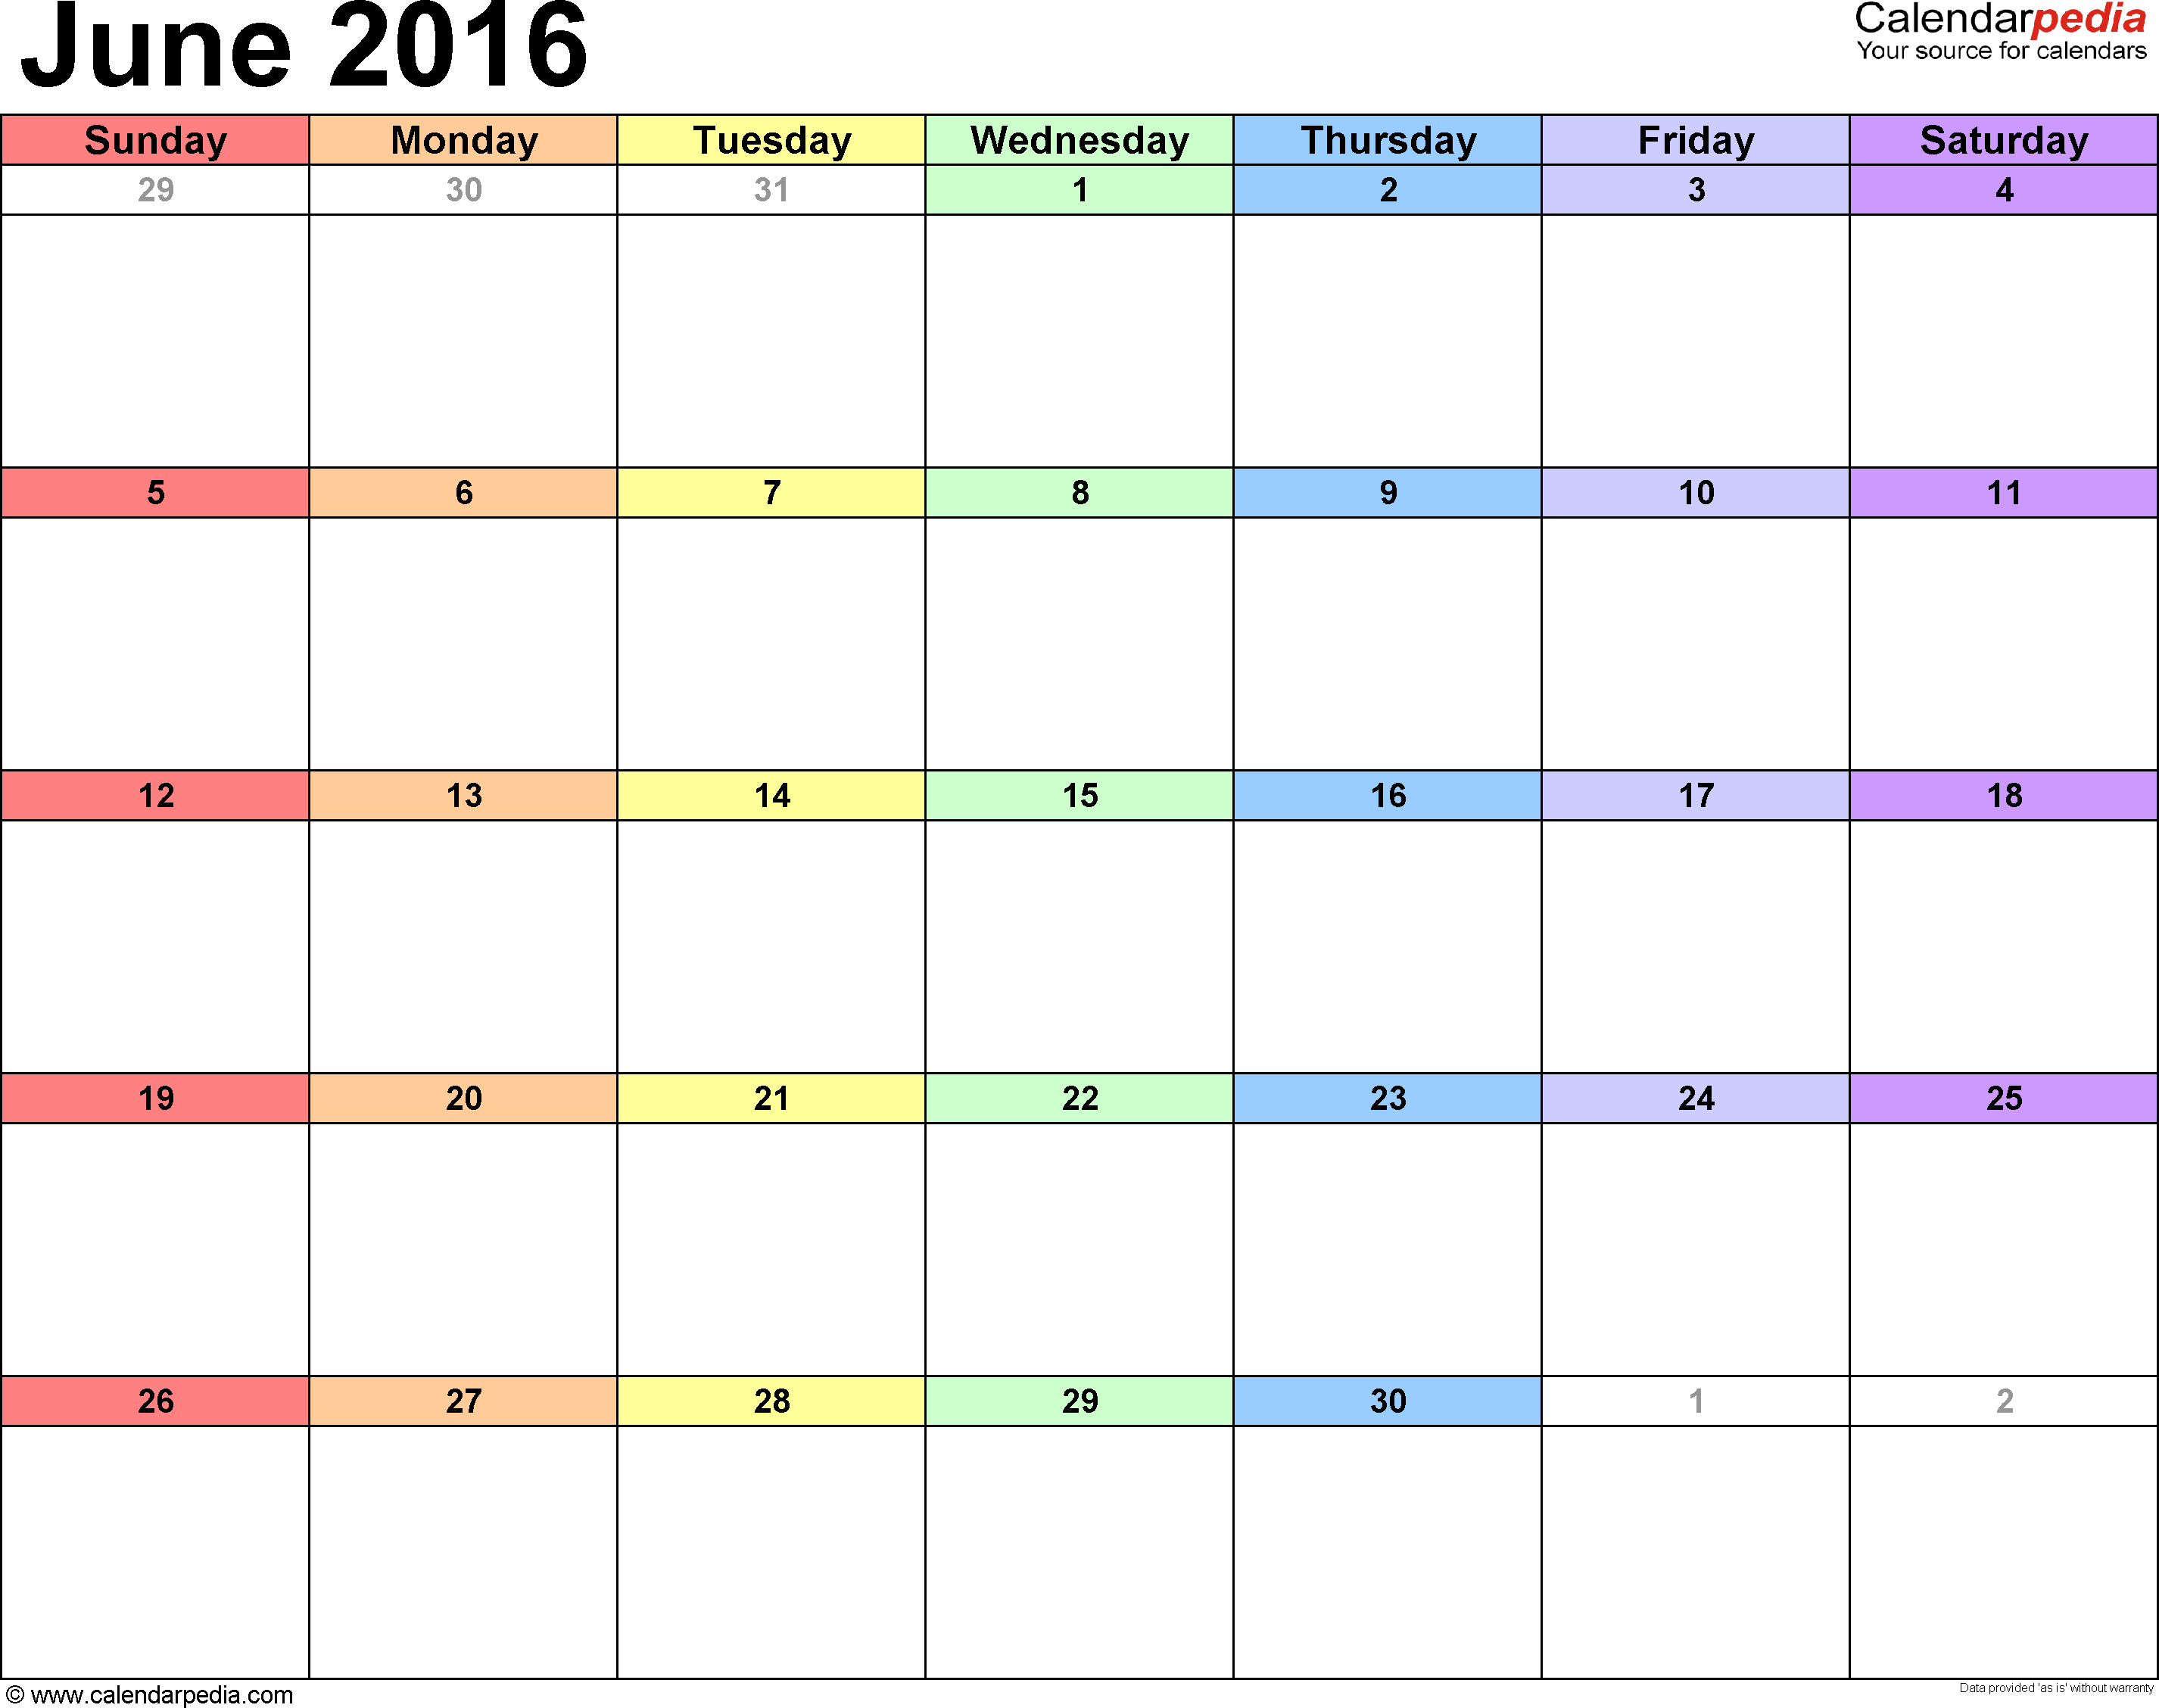 June 2016 calendar printable template